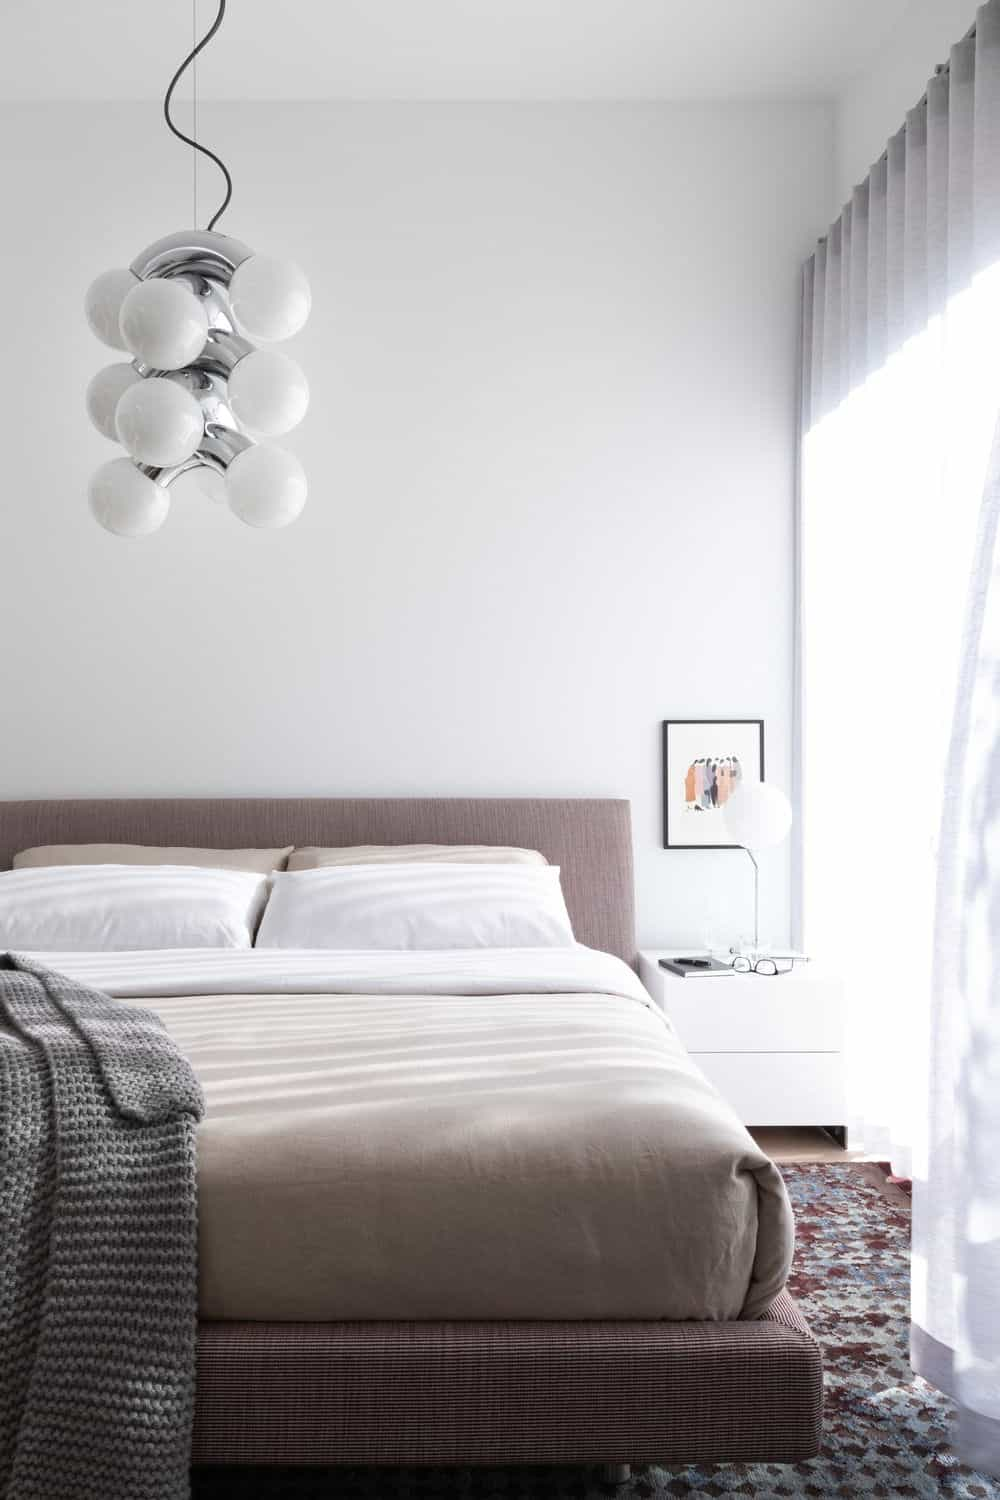 Another bedroom features a queen size bed lighted by a stylish ceiling light. Photo credit: Ema Peter